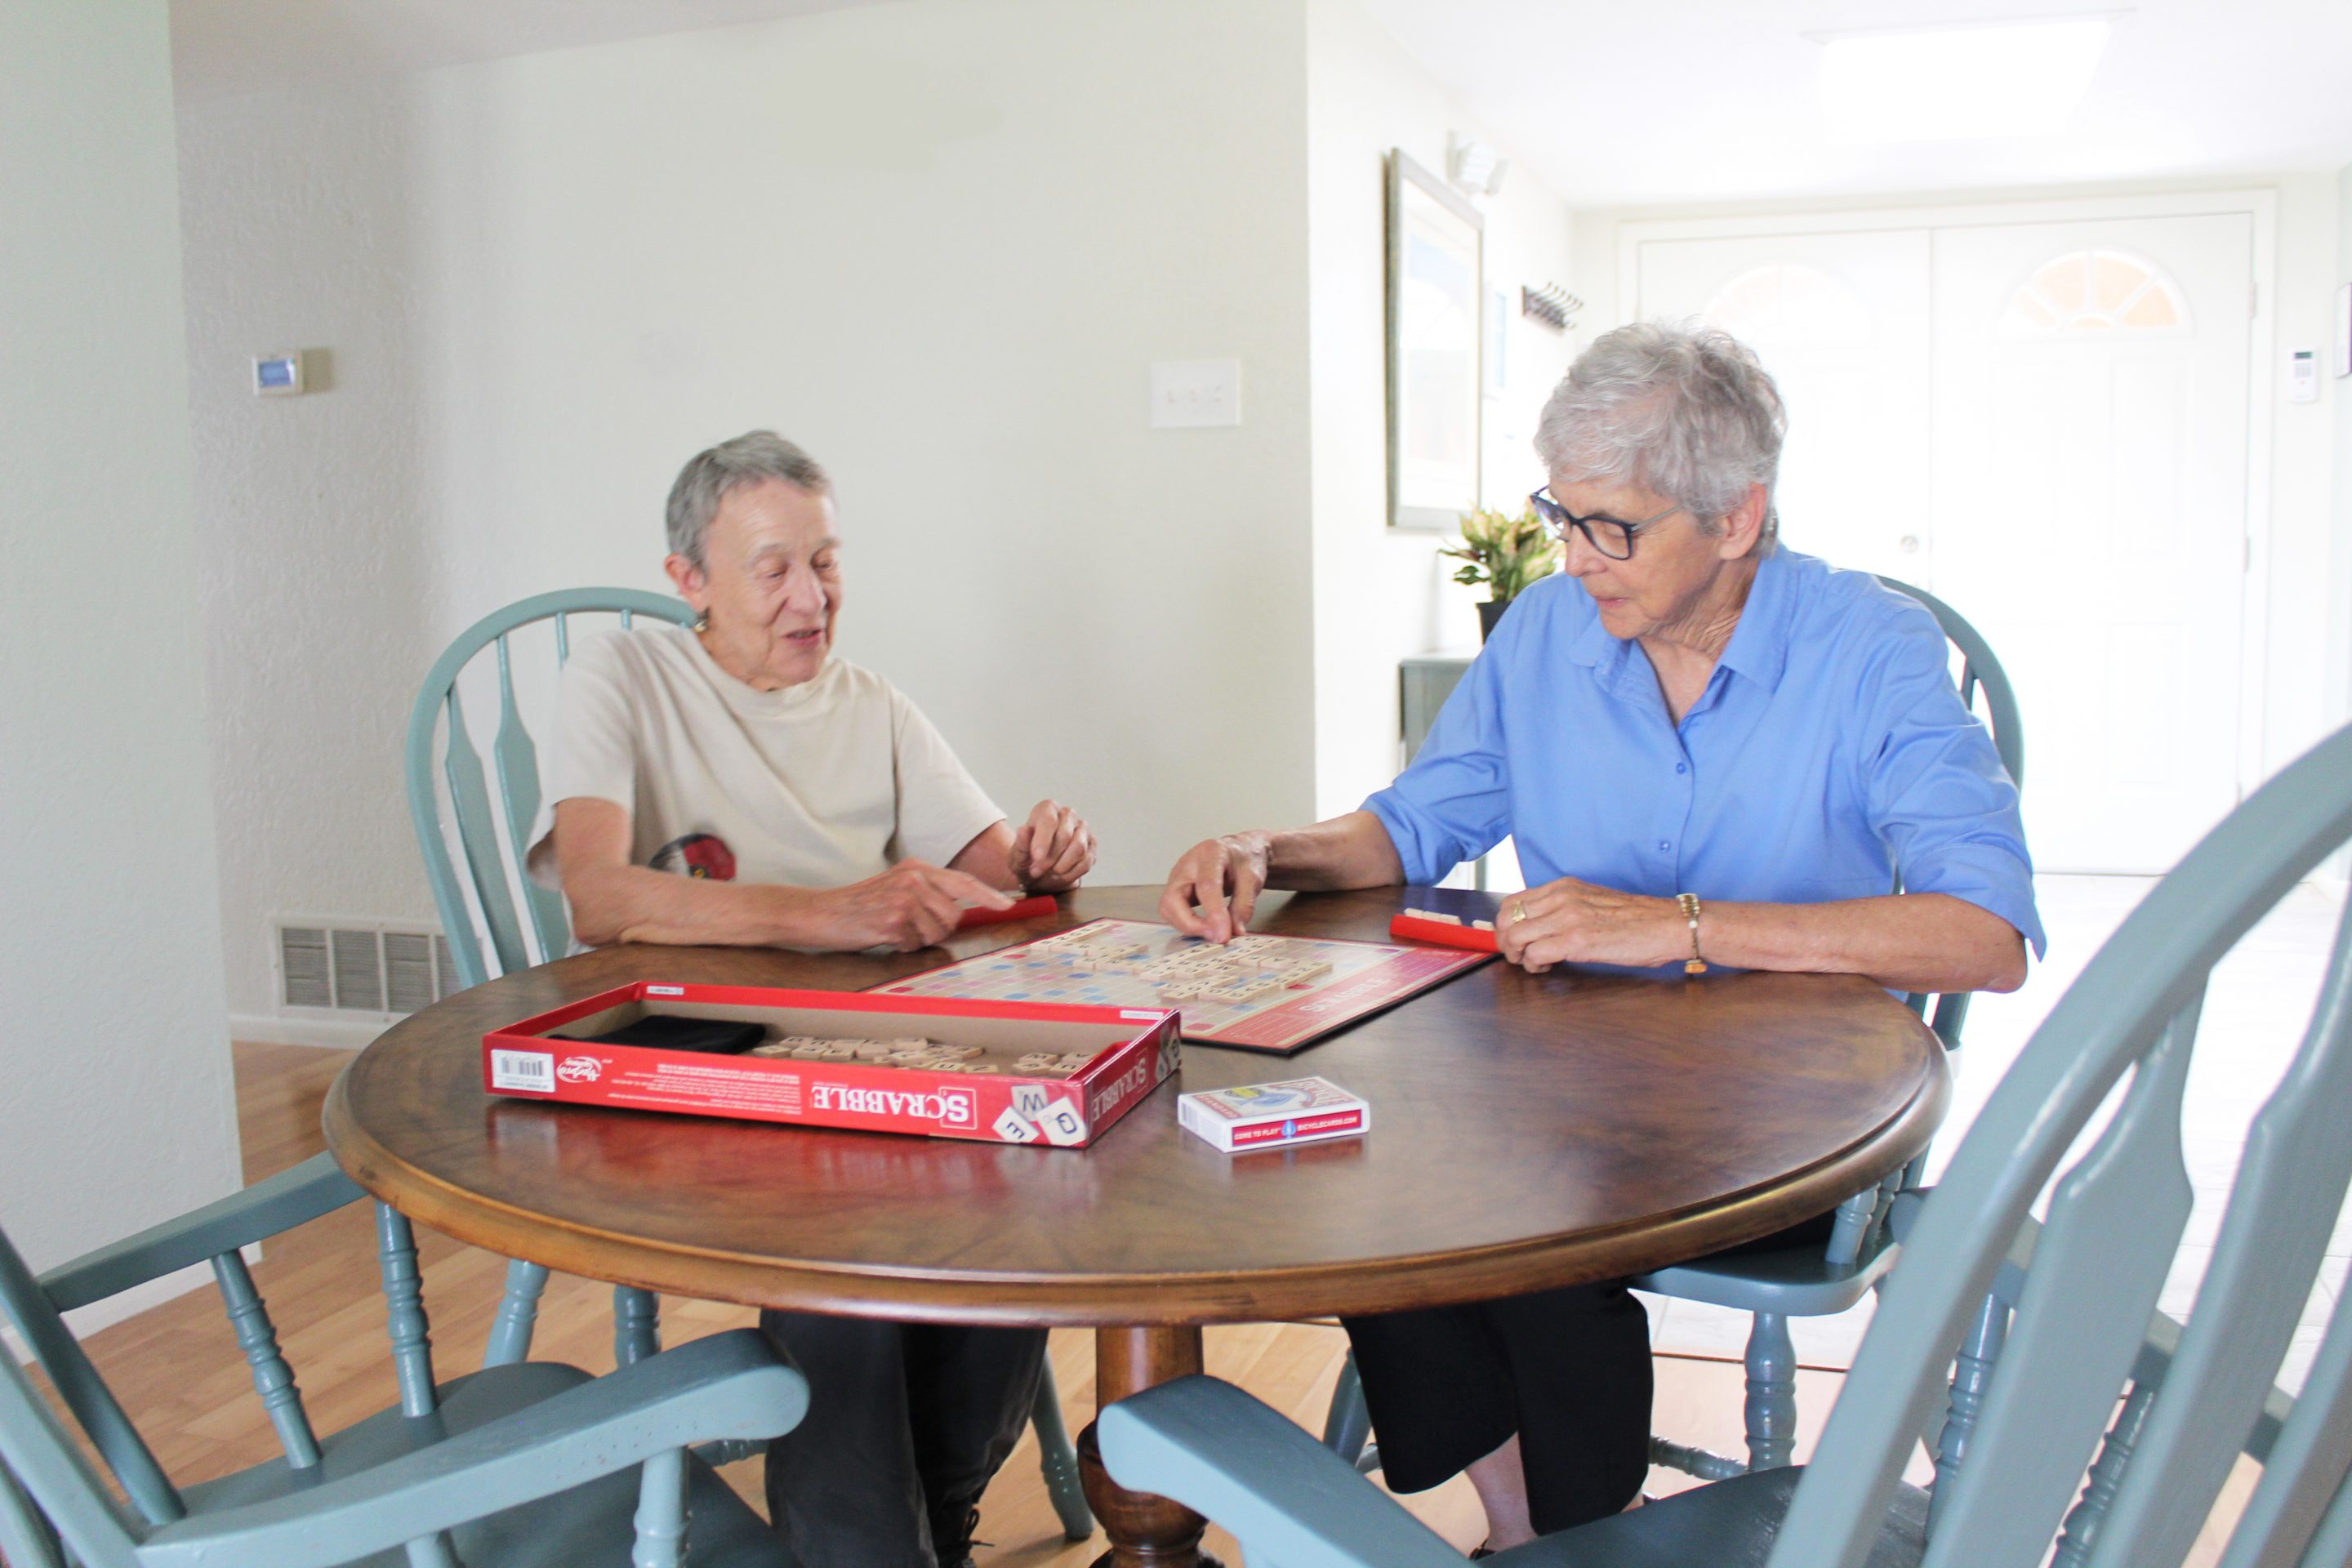 Two older women sit at a table playing scrabble